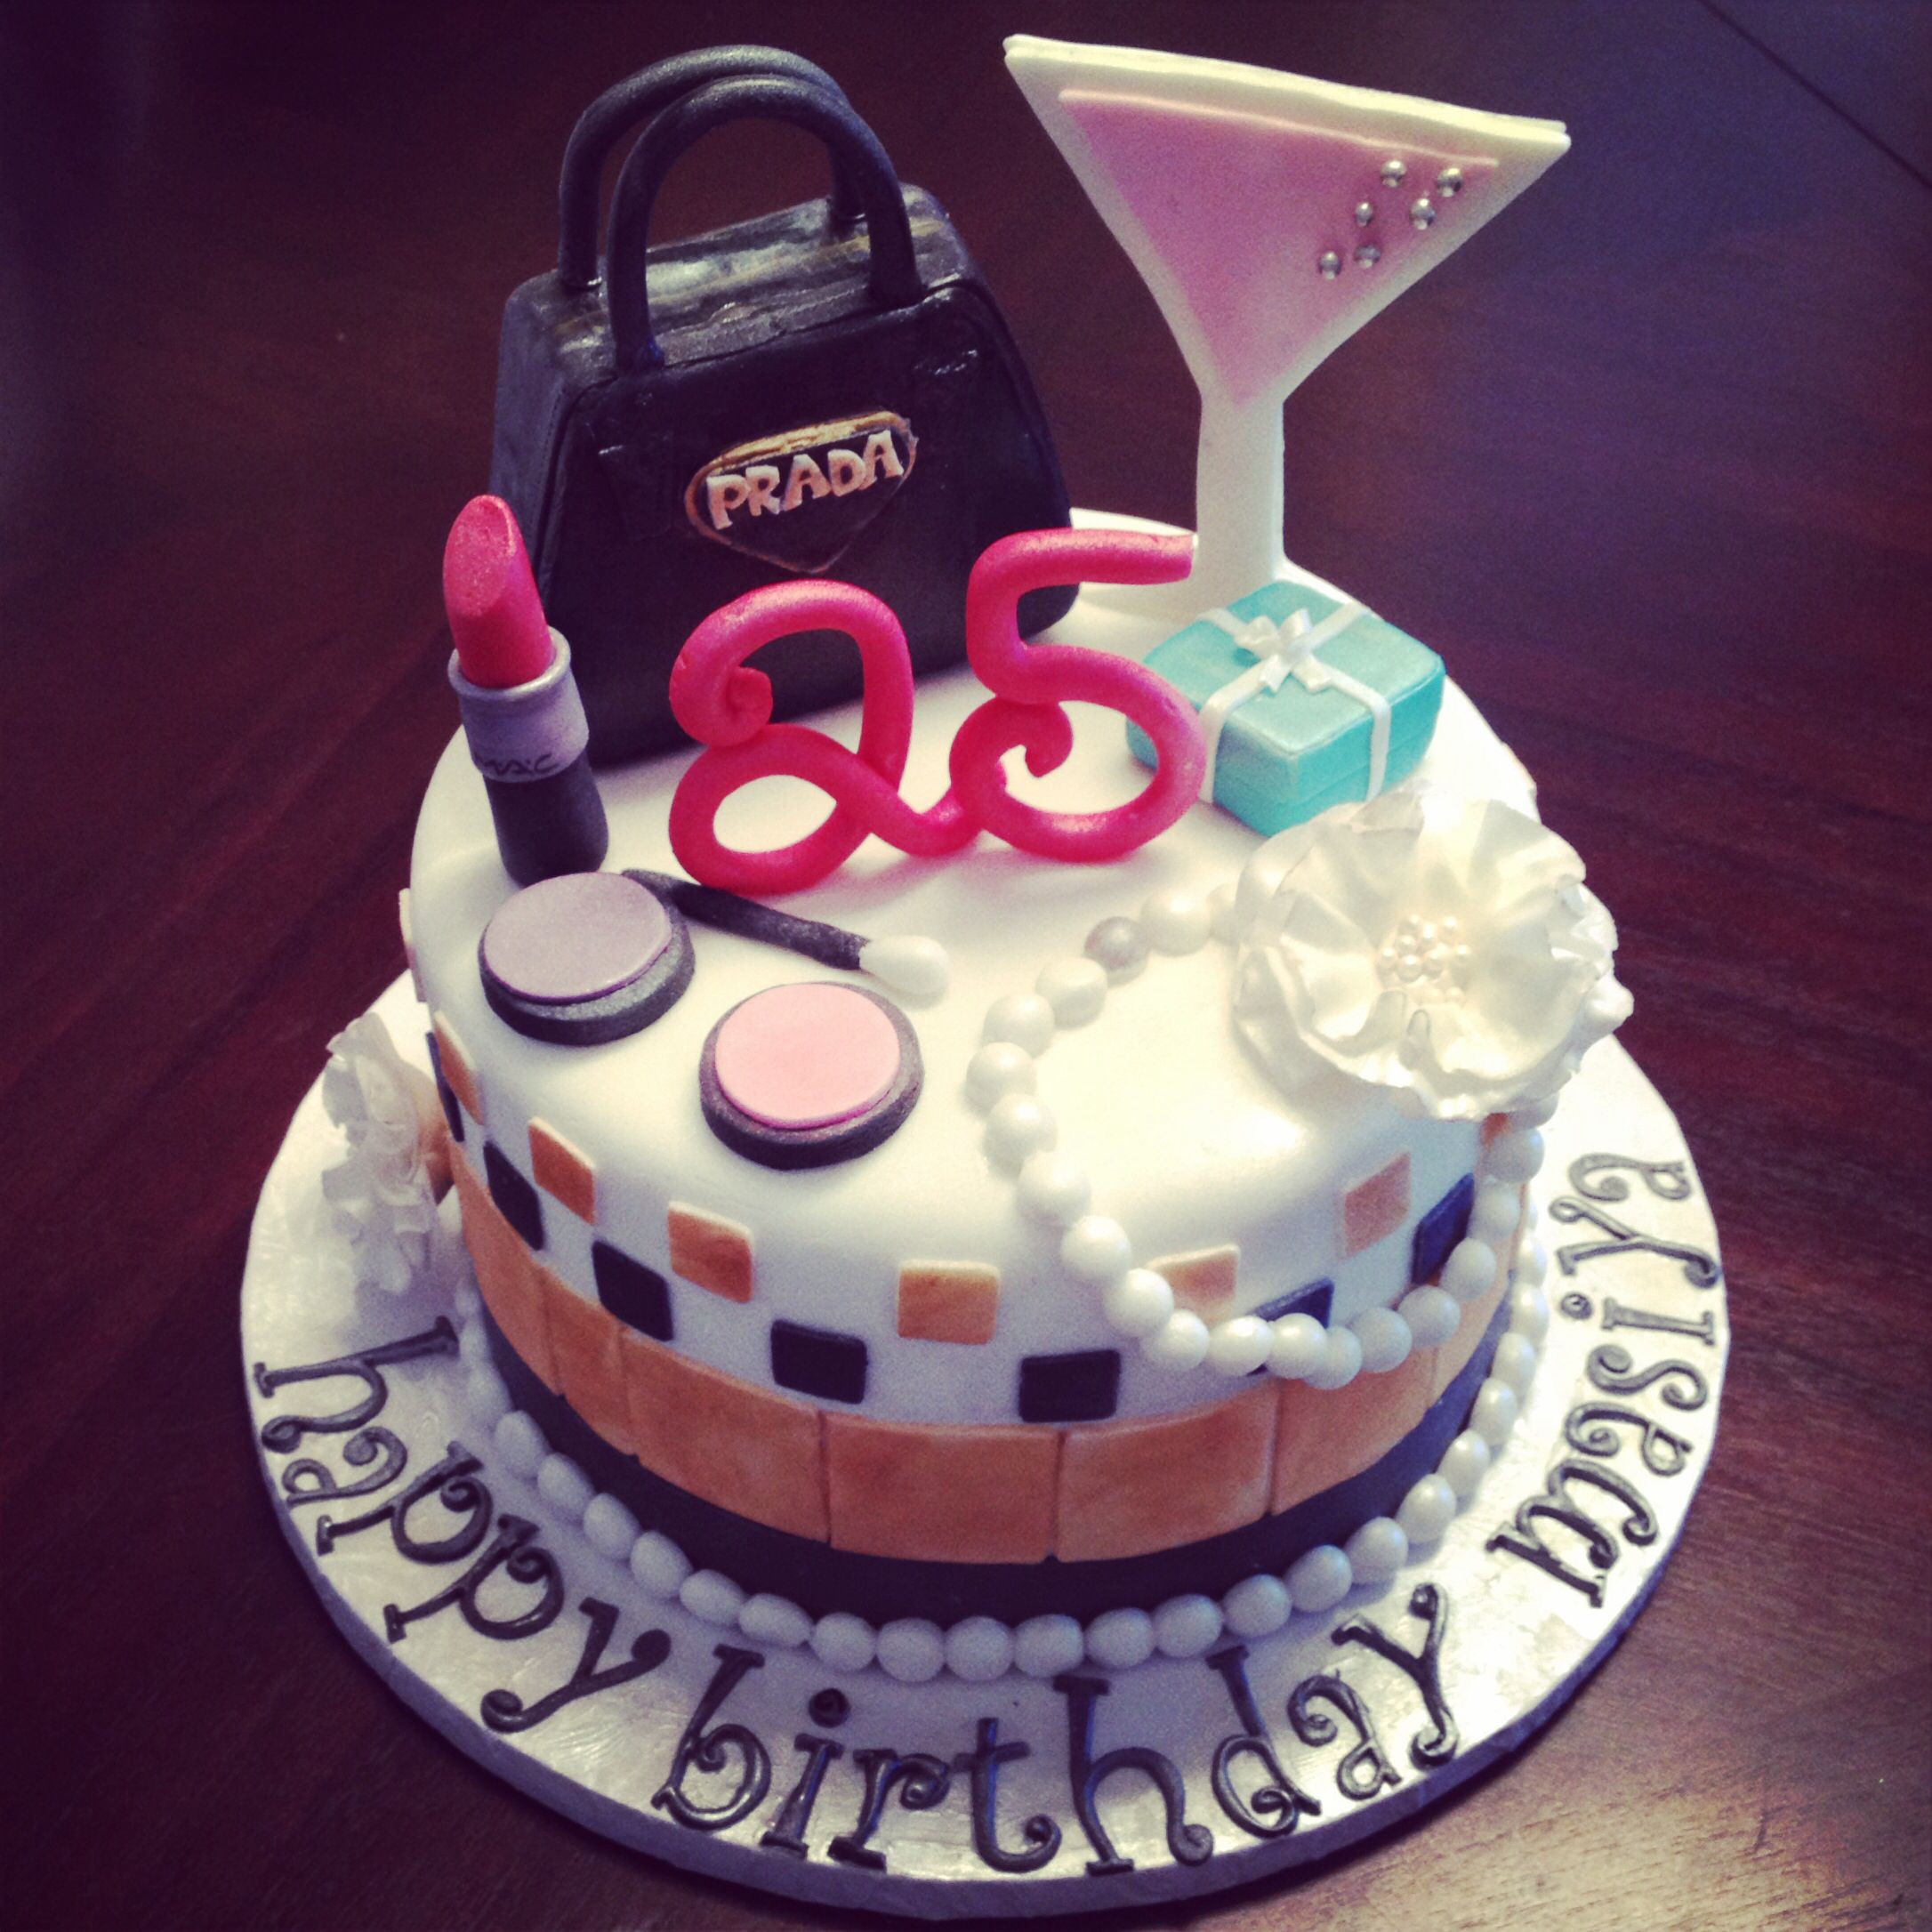 Best ideas about 25 Birthday Cake . Save or Pin Very girly 25th birthday cake All edible and handmade Now.